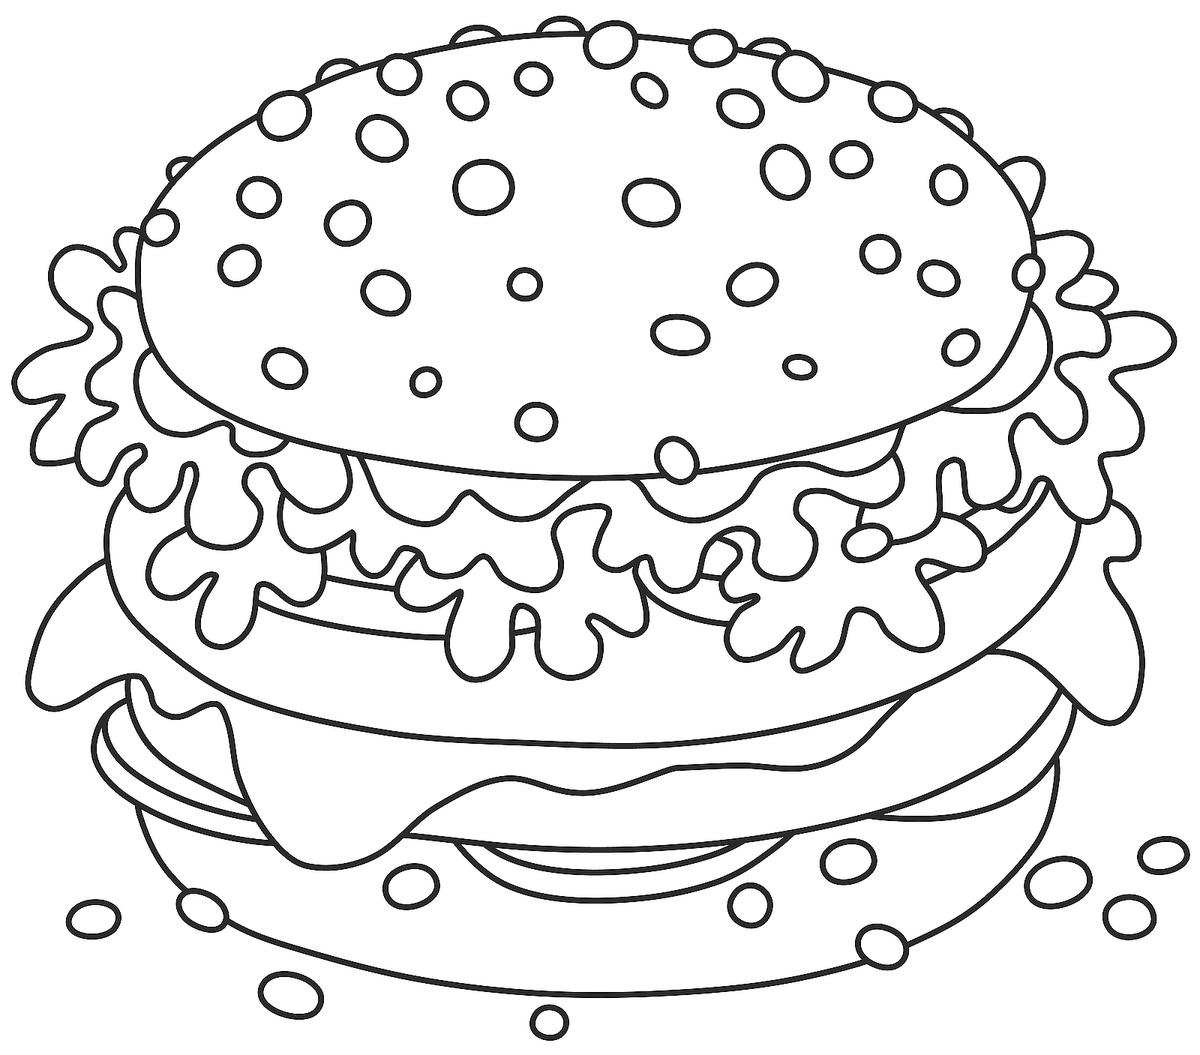 Food Coloring Pages: 20 Free Printable Coloring Pages of ...